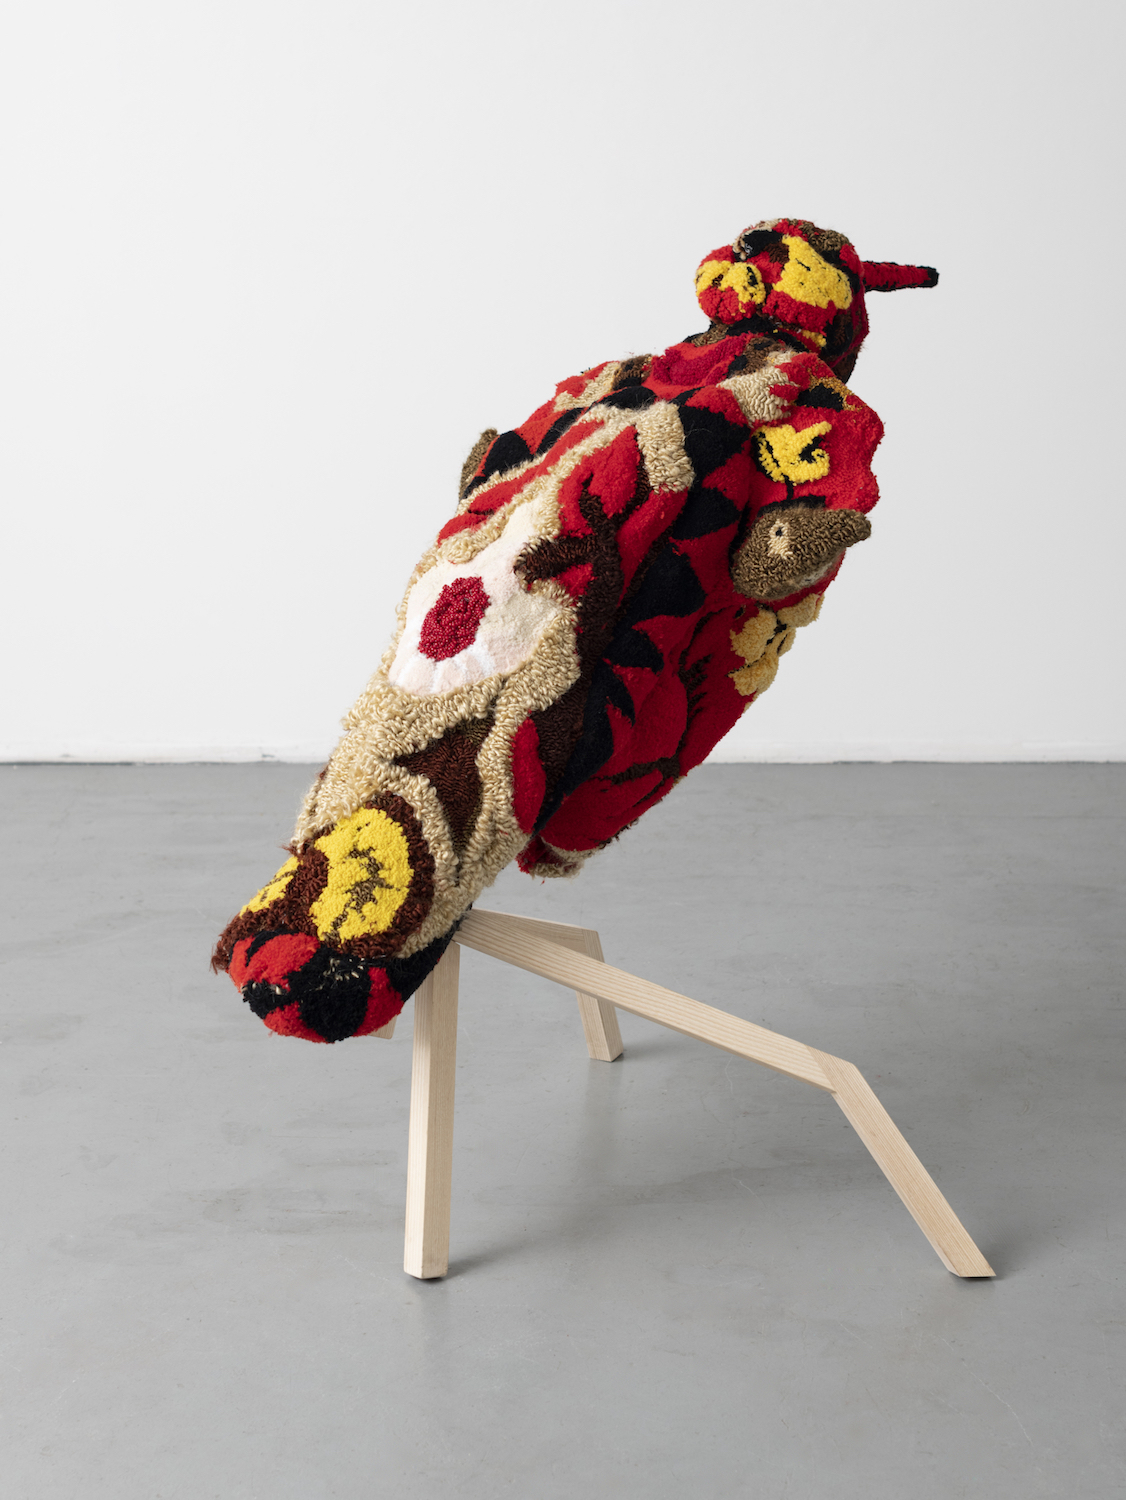 Anna Perach, Mother of Egg, 2019. Tufted yarn, beading, wooden frame. 90 x 150cm.